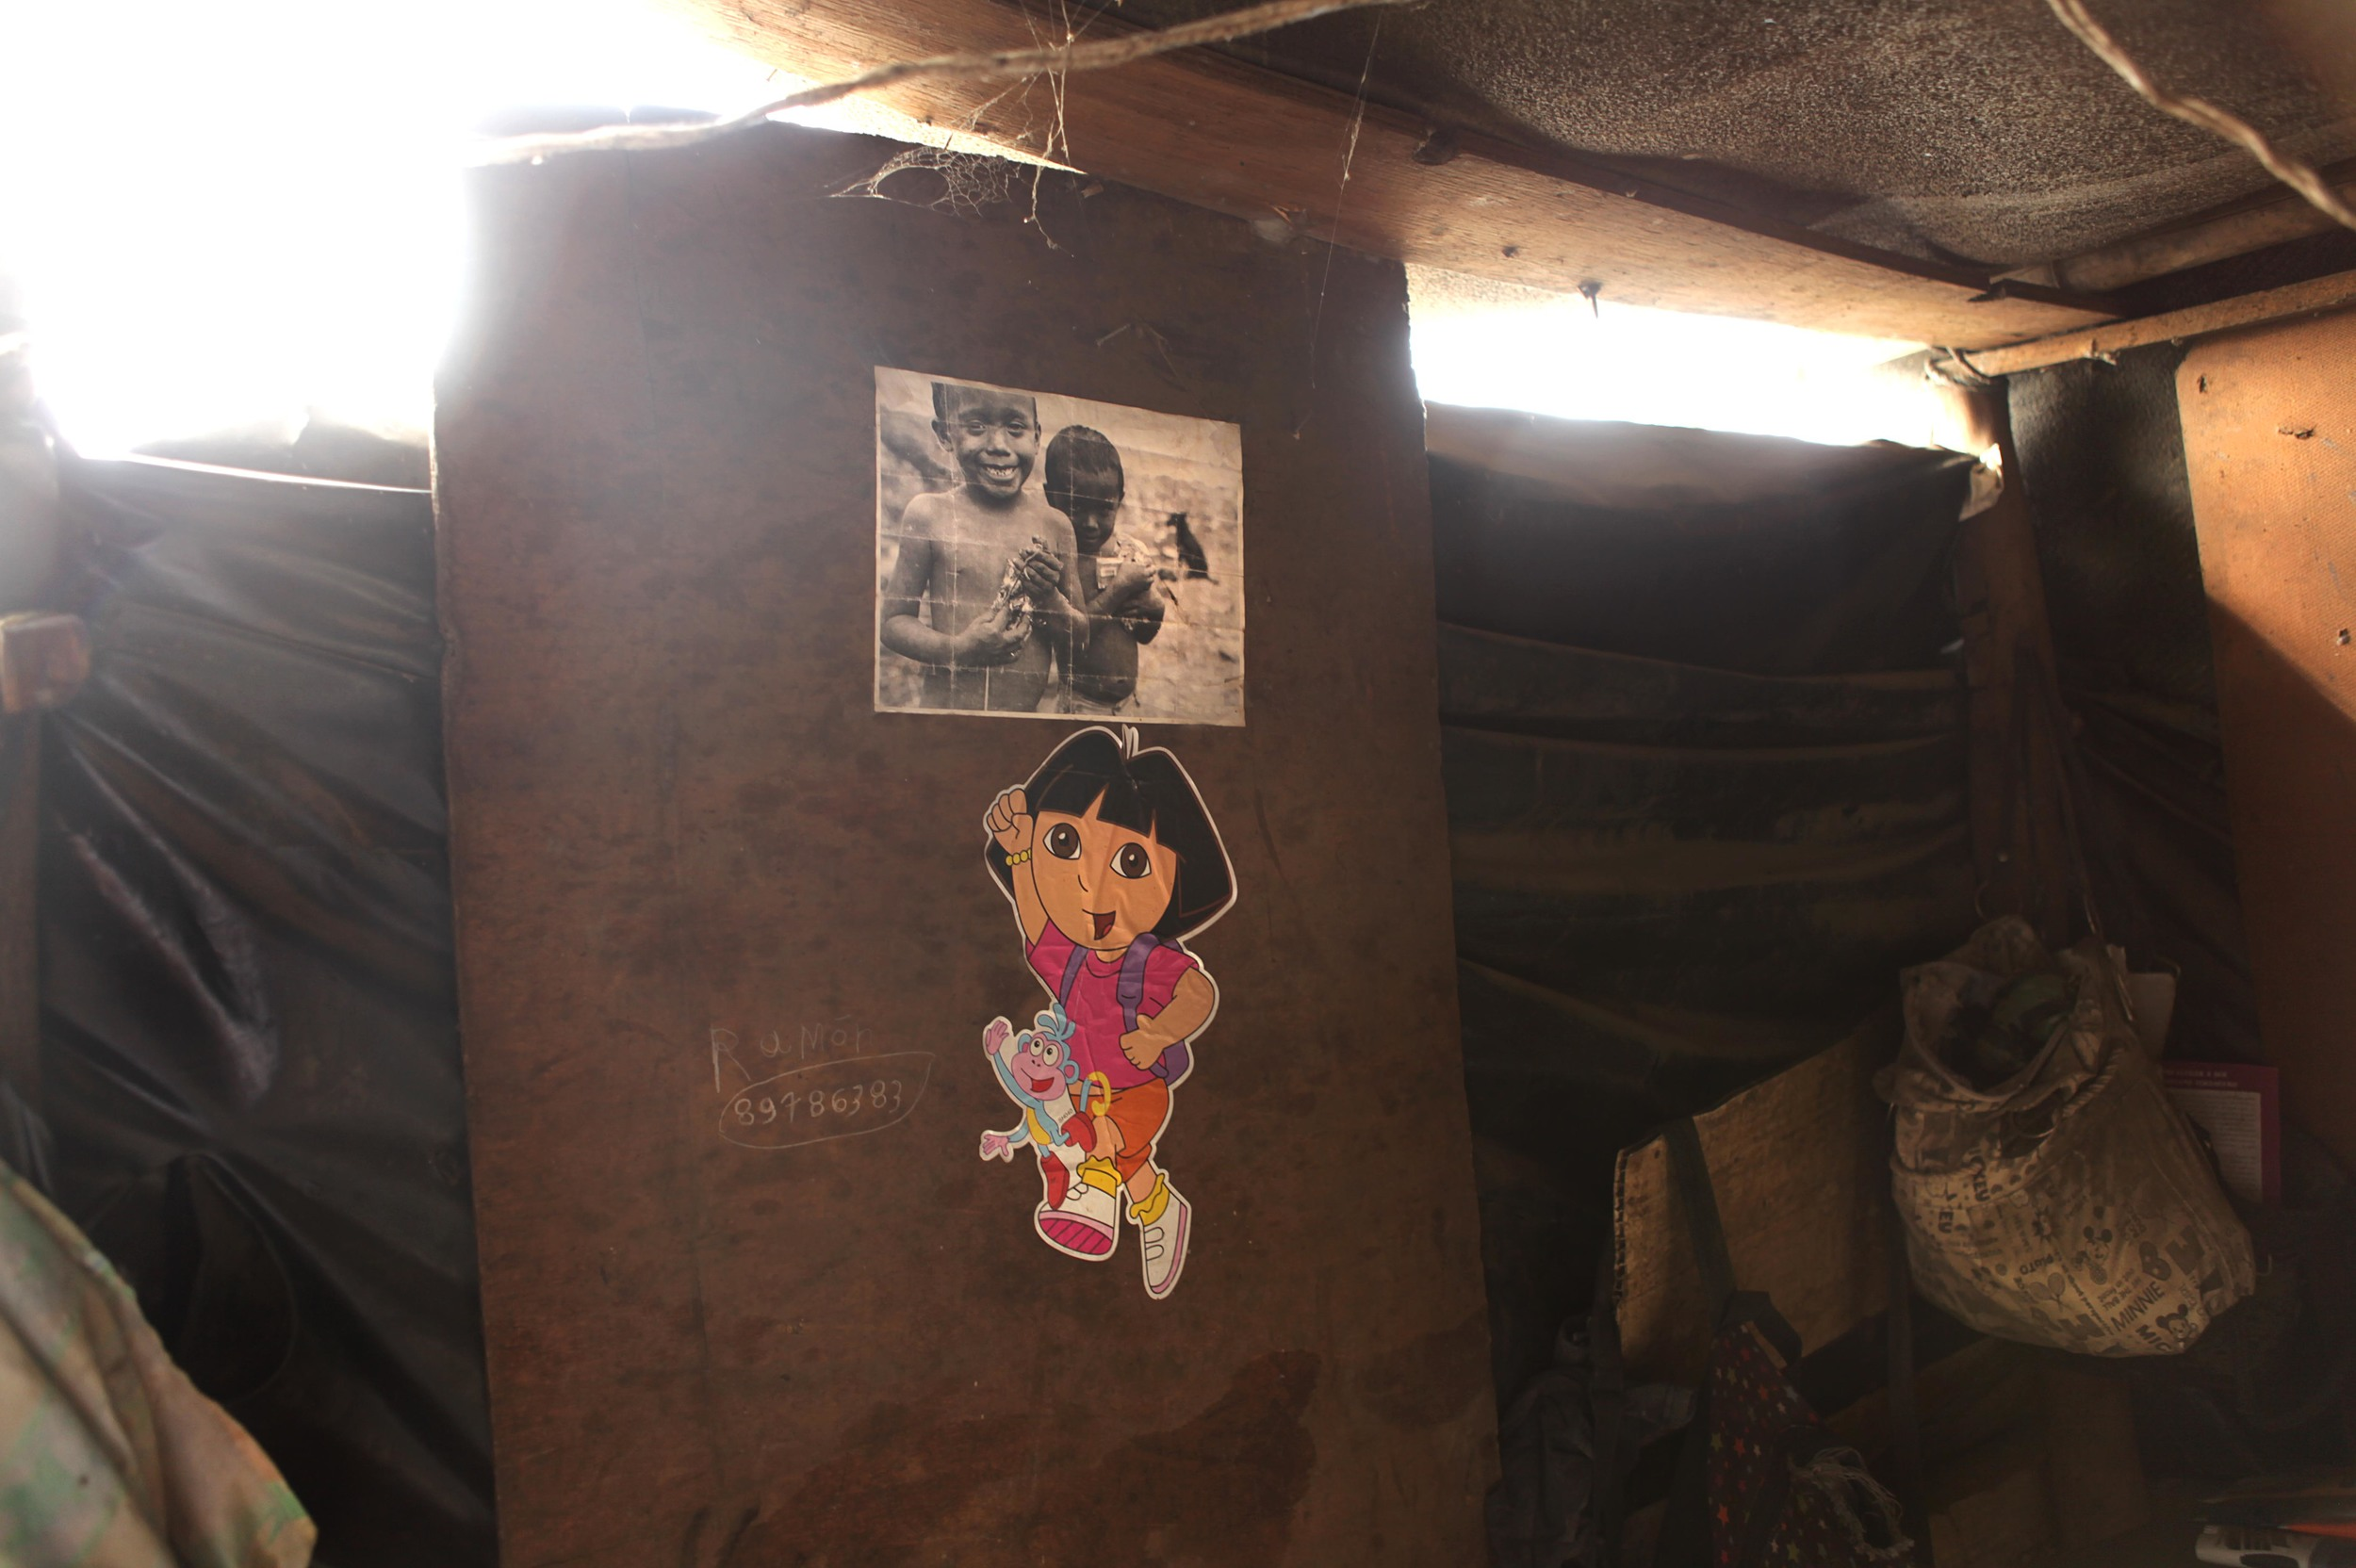 The most touching part of my third trip was to see the photo I took during my first trip that I gave the Juarez Lopez family during my second trip hanging over their bed inside their small home.